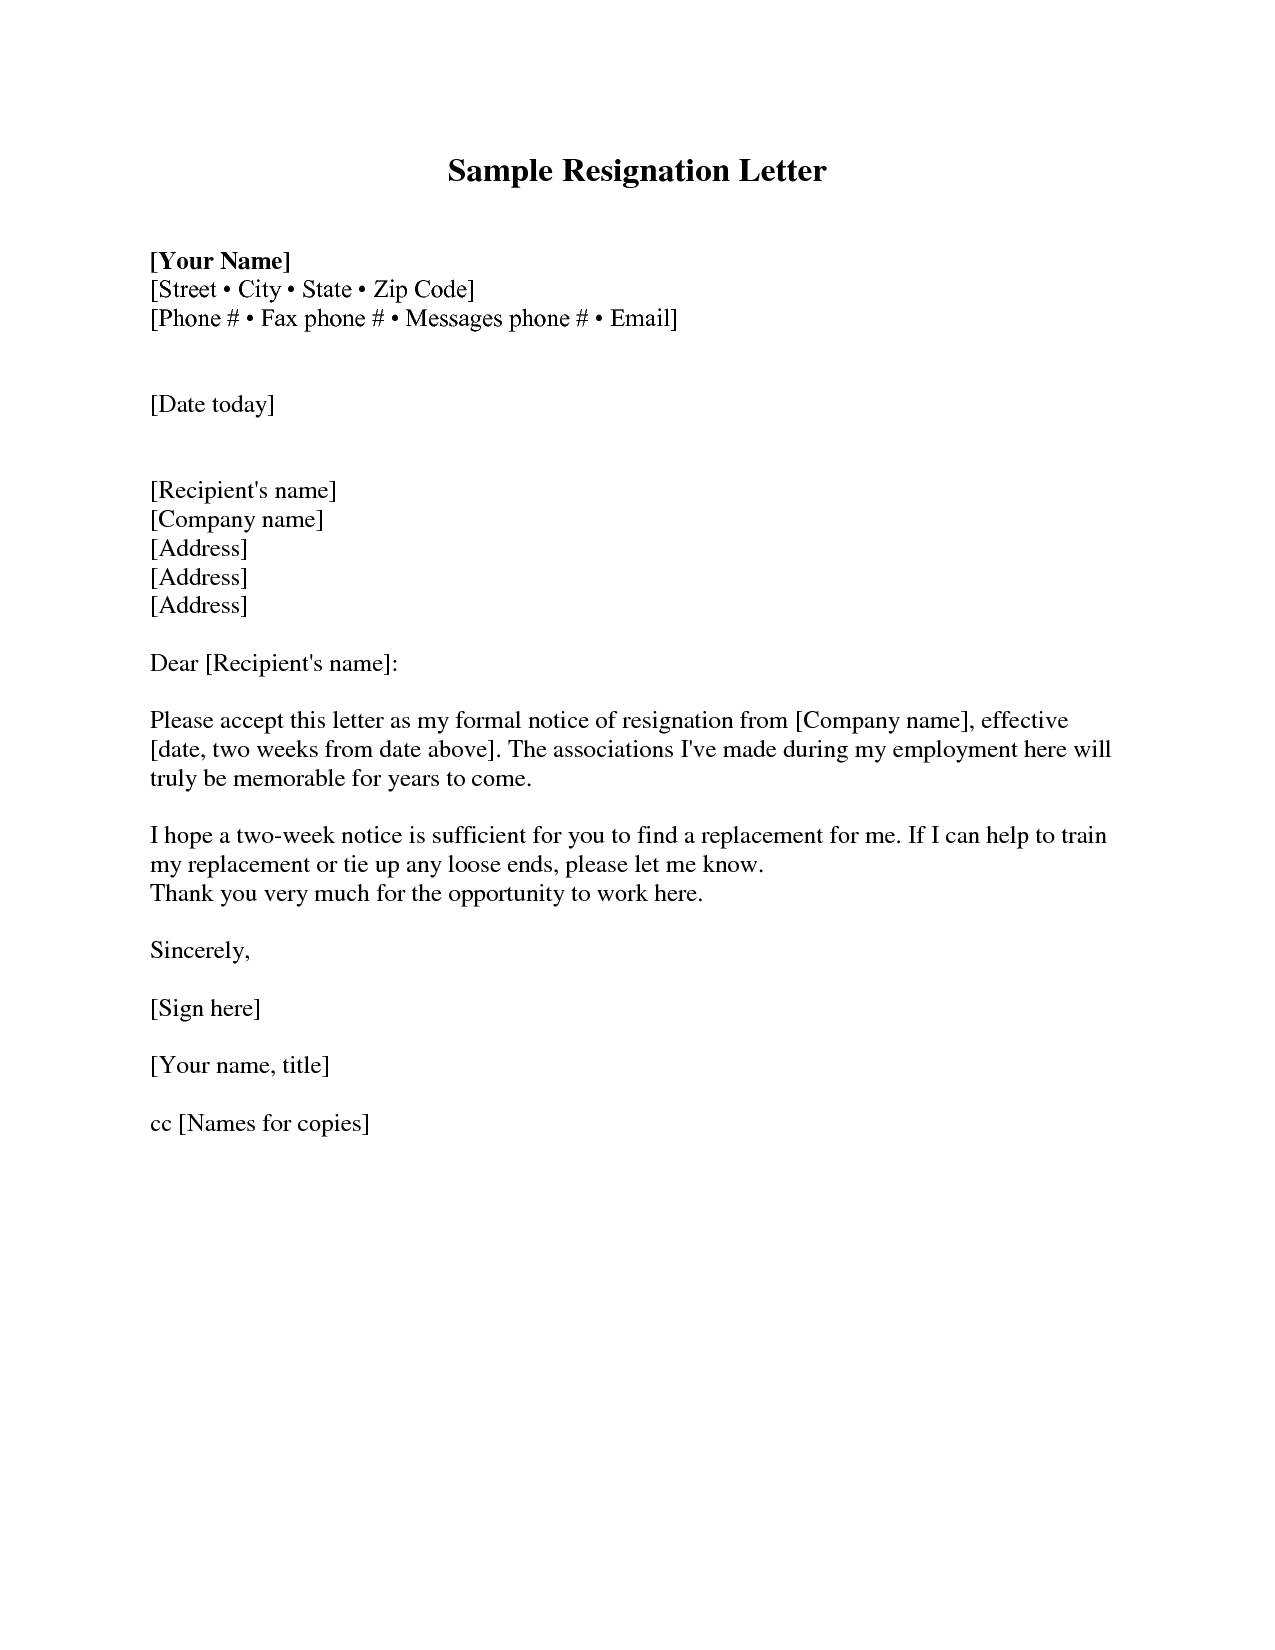 Resignation Letter Template Word Free - Resignation Letter Sample 2 Weeks Notice Free2img